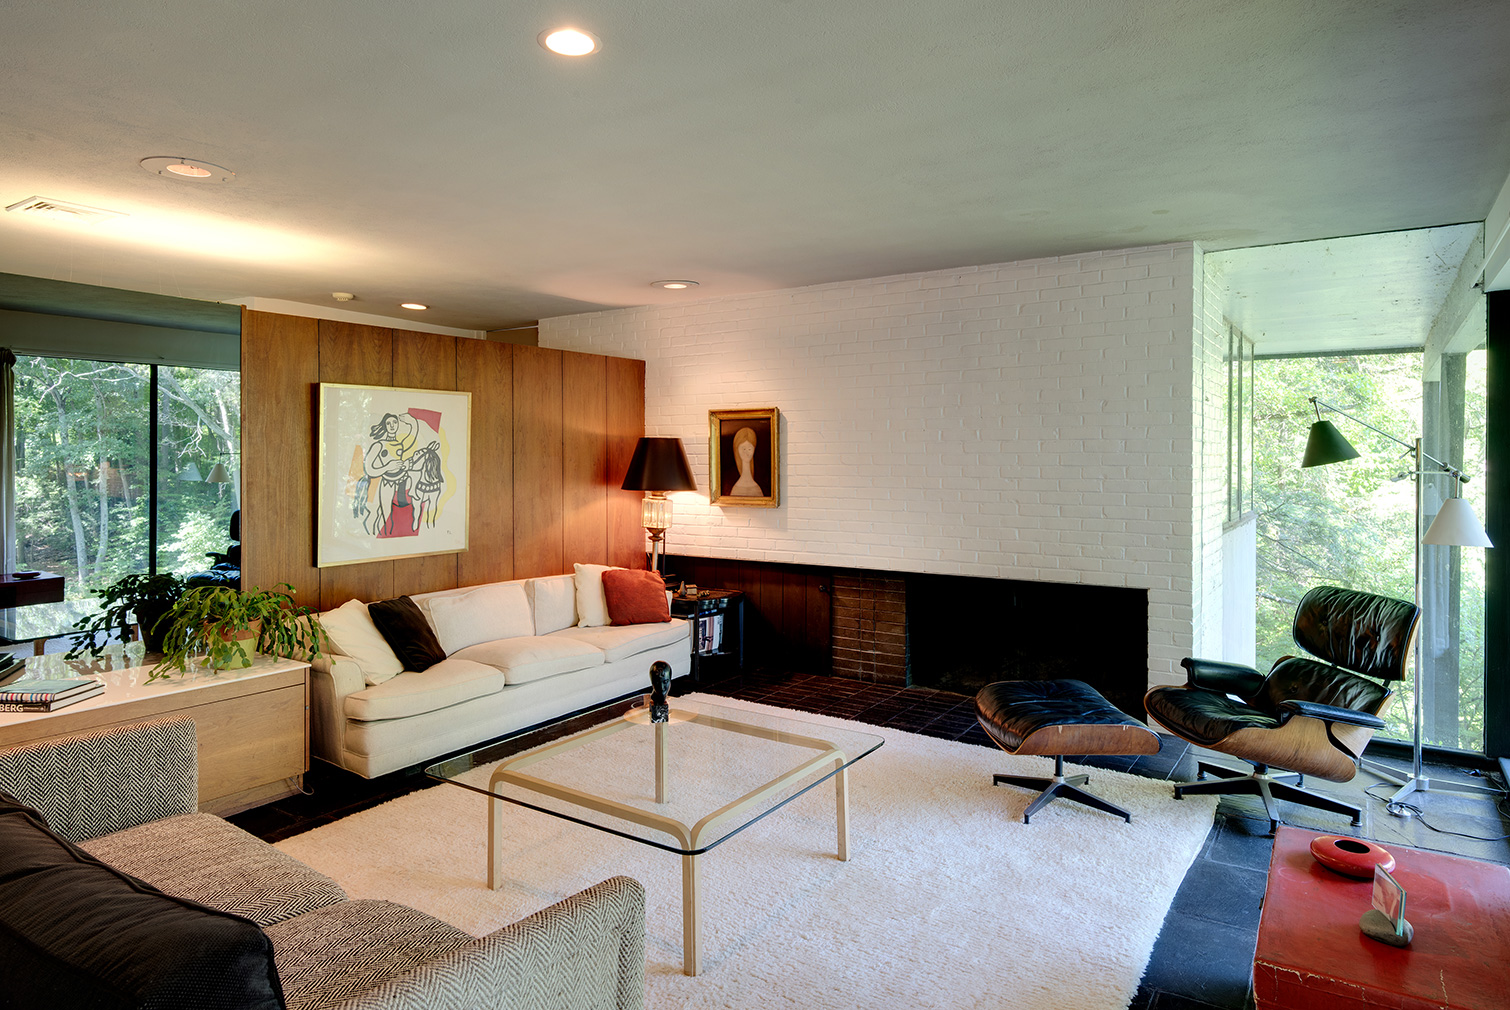 Corwin House in Connecticut for sale